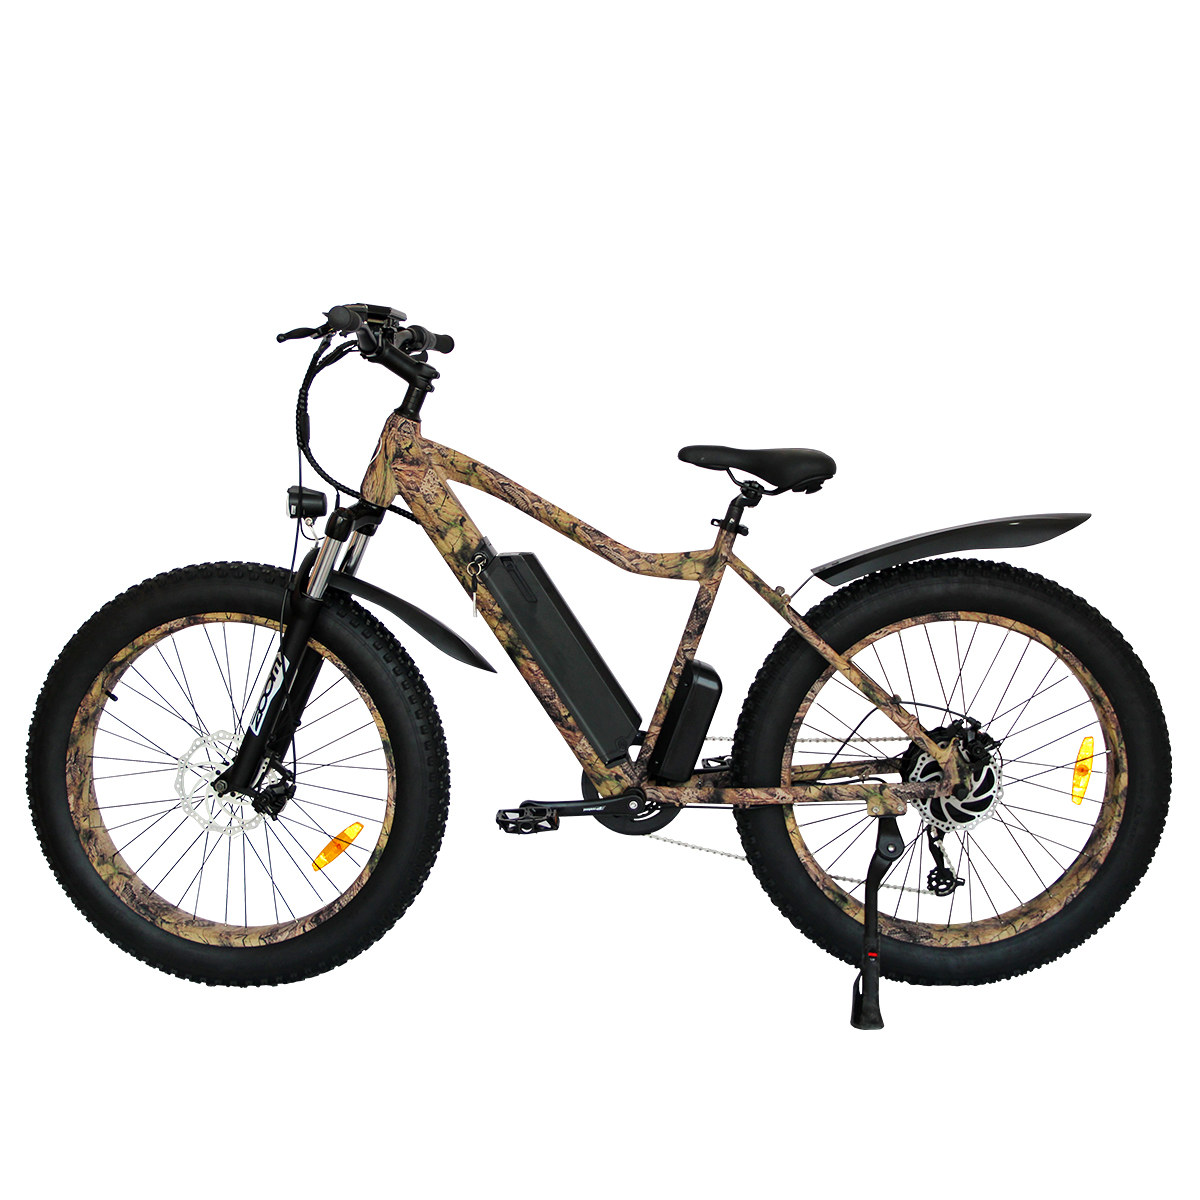 AOSTIRMOTOR 750w Fat Tire Electric Bike S07-2-C